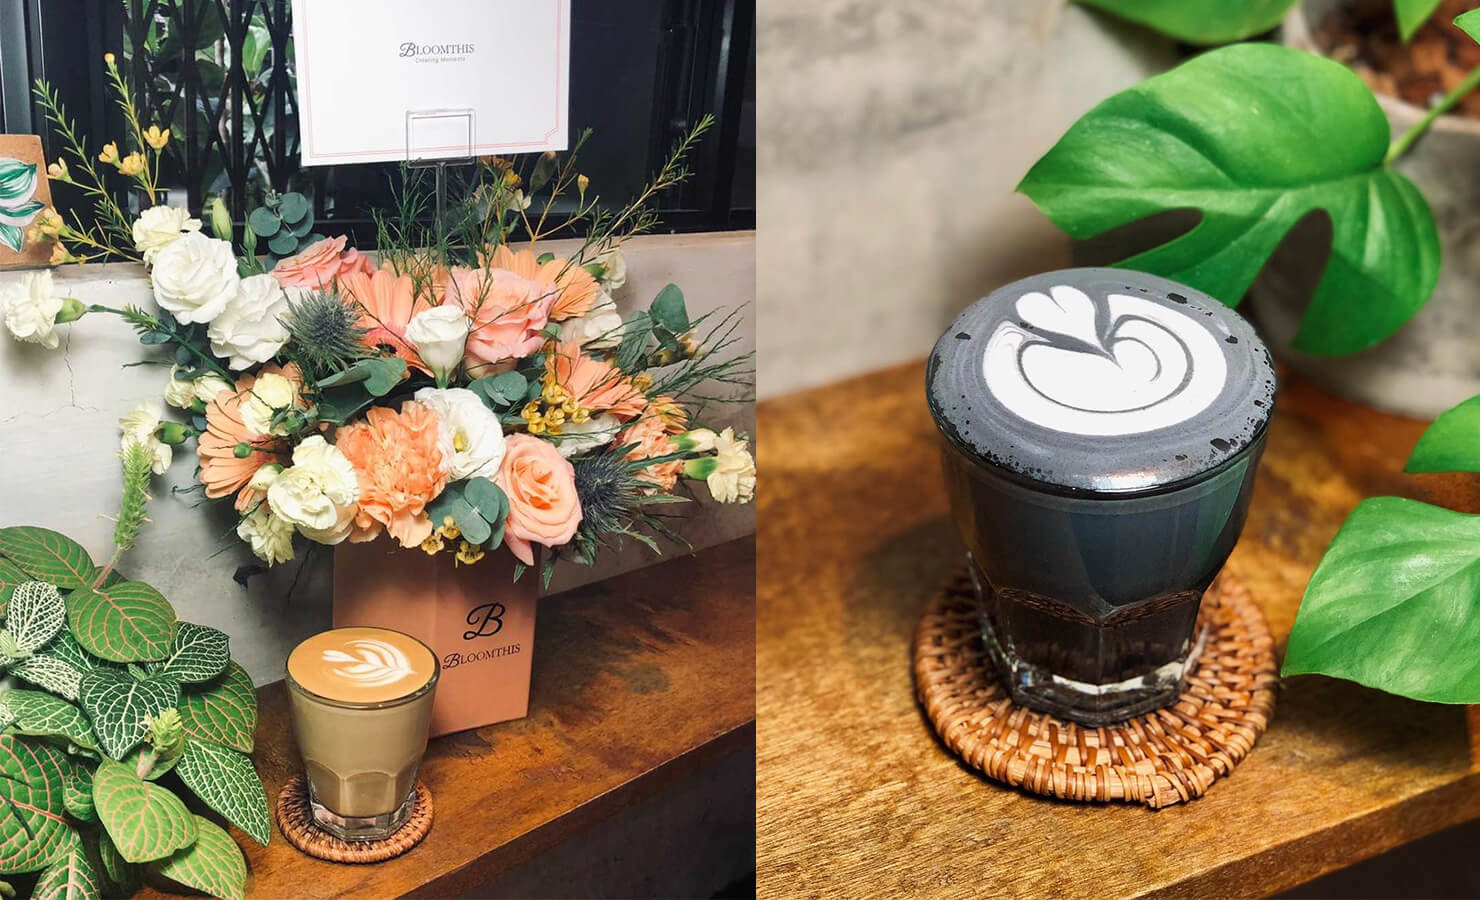 bloomthis-5-plant-flower-cafes-you-have-to-visit-06-sipping-corner-coffee-art